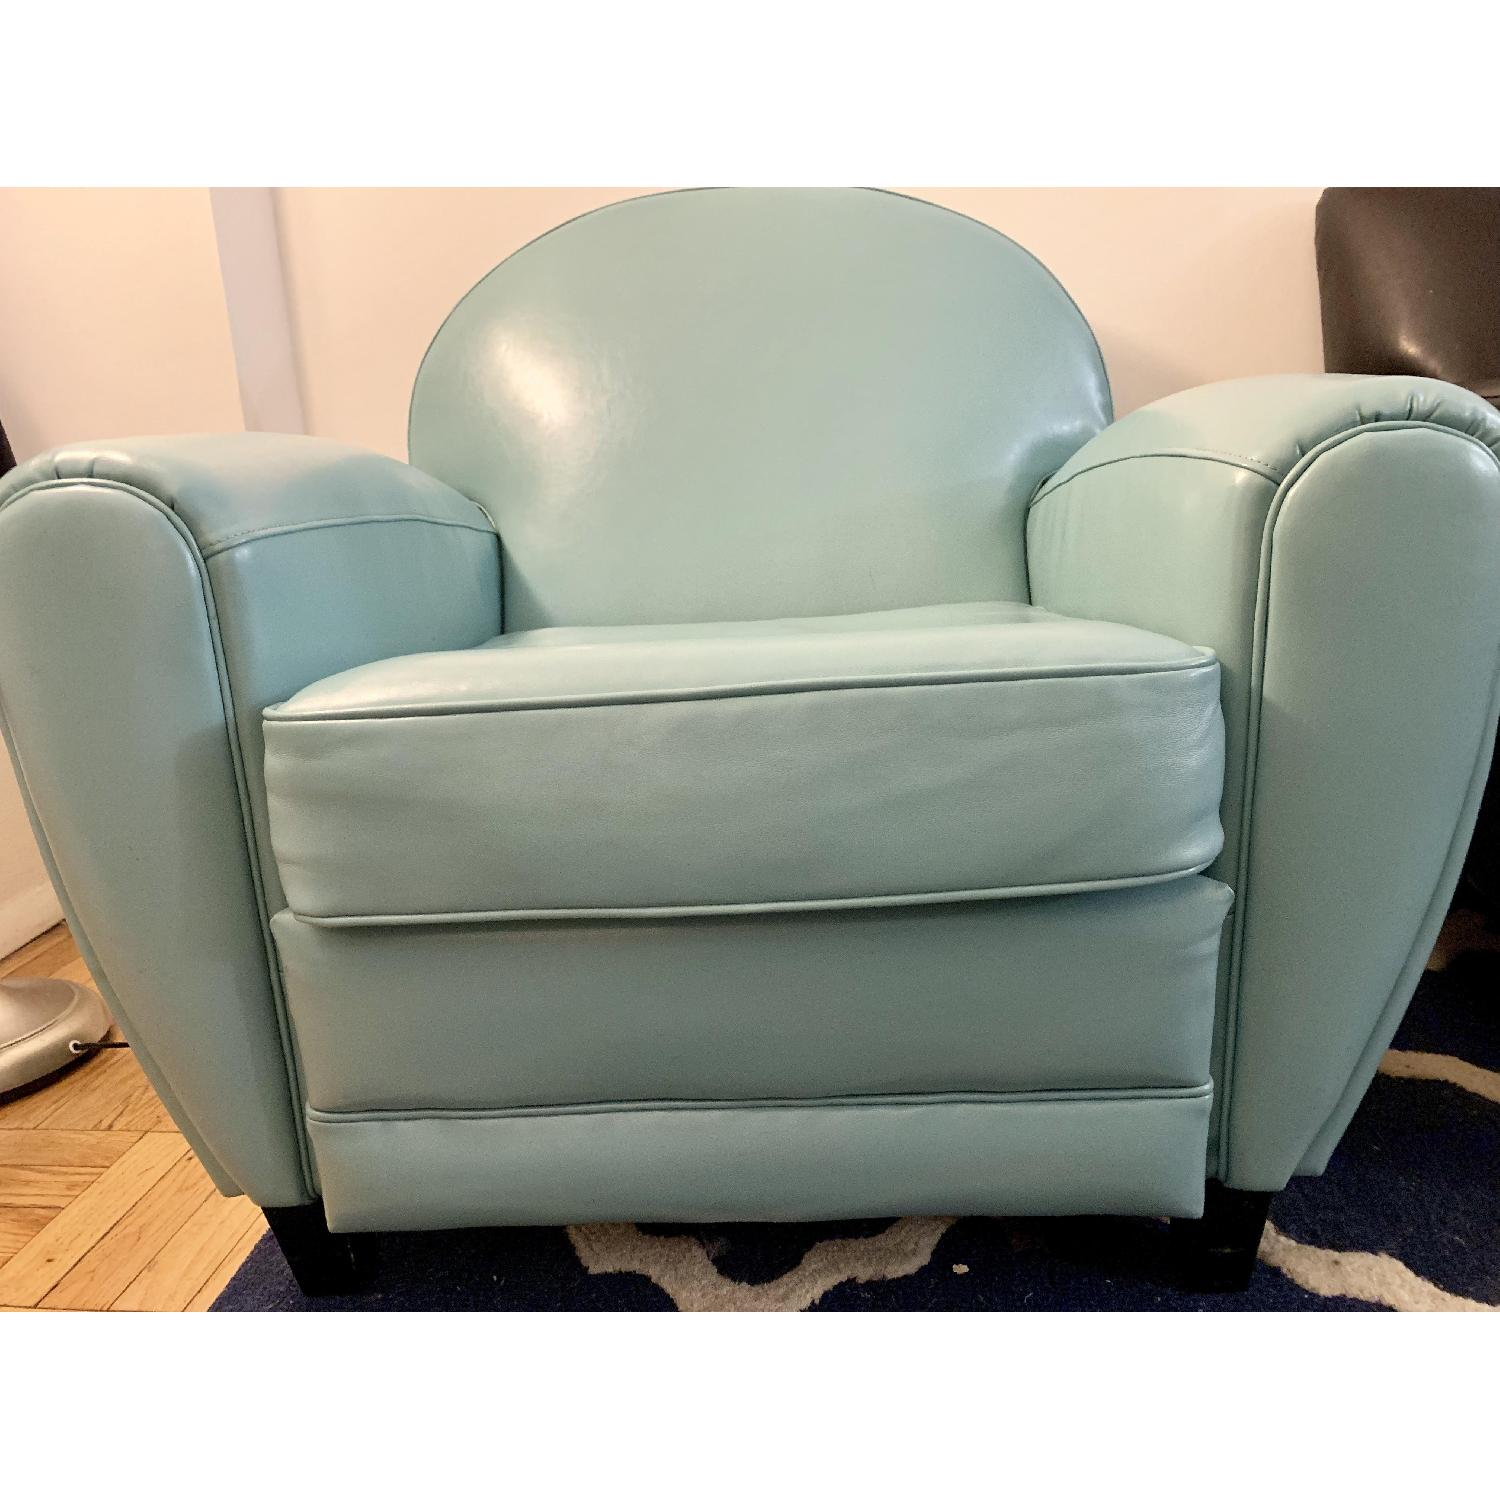 Home Loft Concept Lorenz Leather Cigar Chair in Teal Blue - image-2